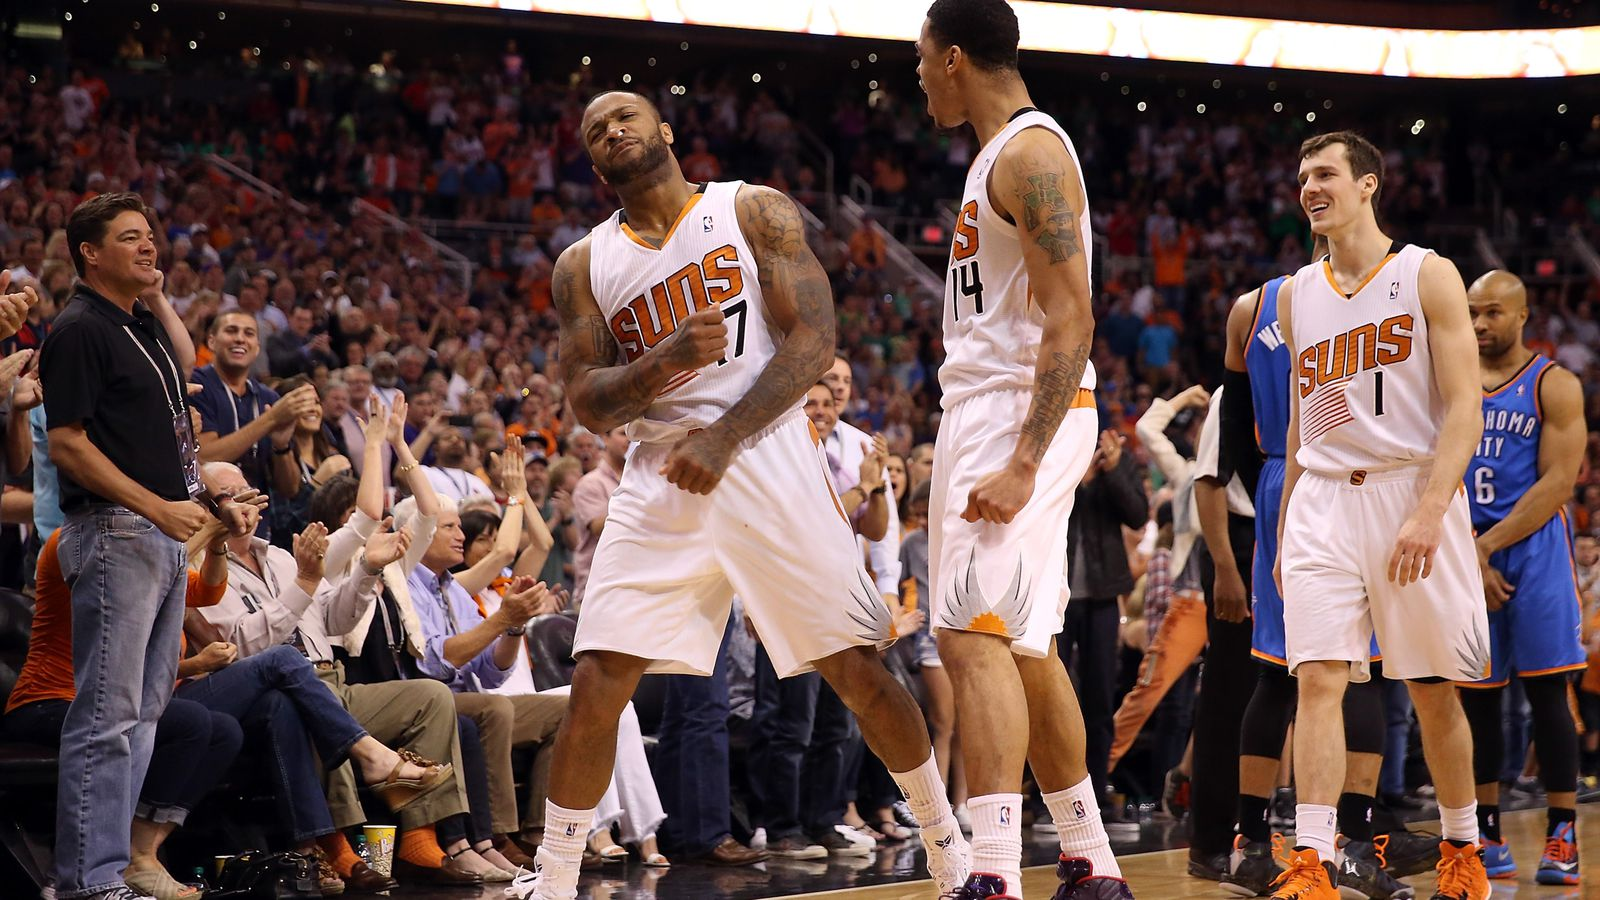 Suns are hotter than Dallas or Memphis